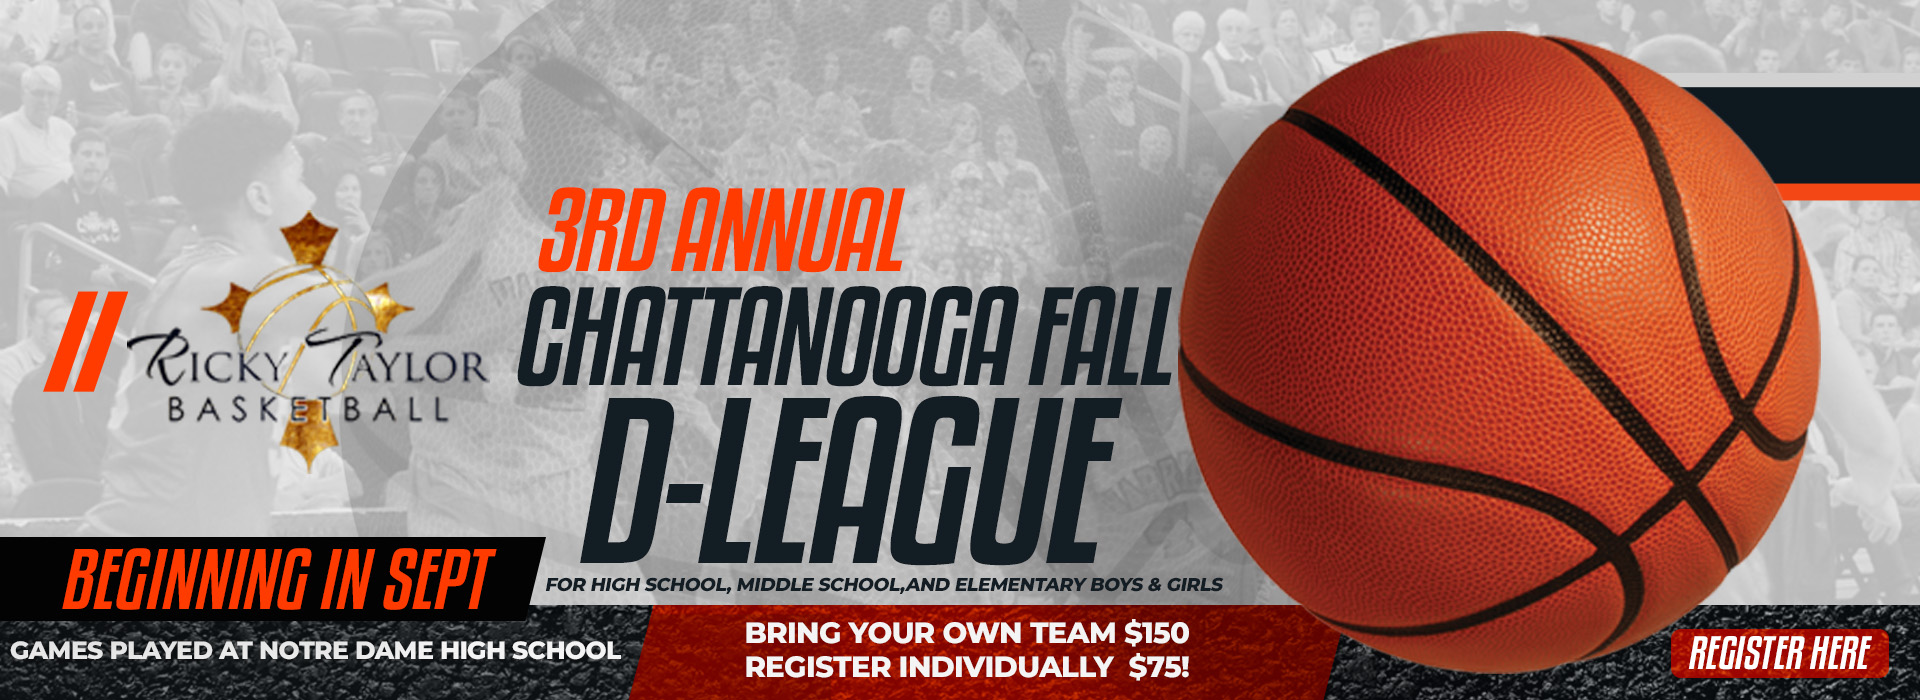 Chattanooga-D-League-Banner